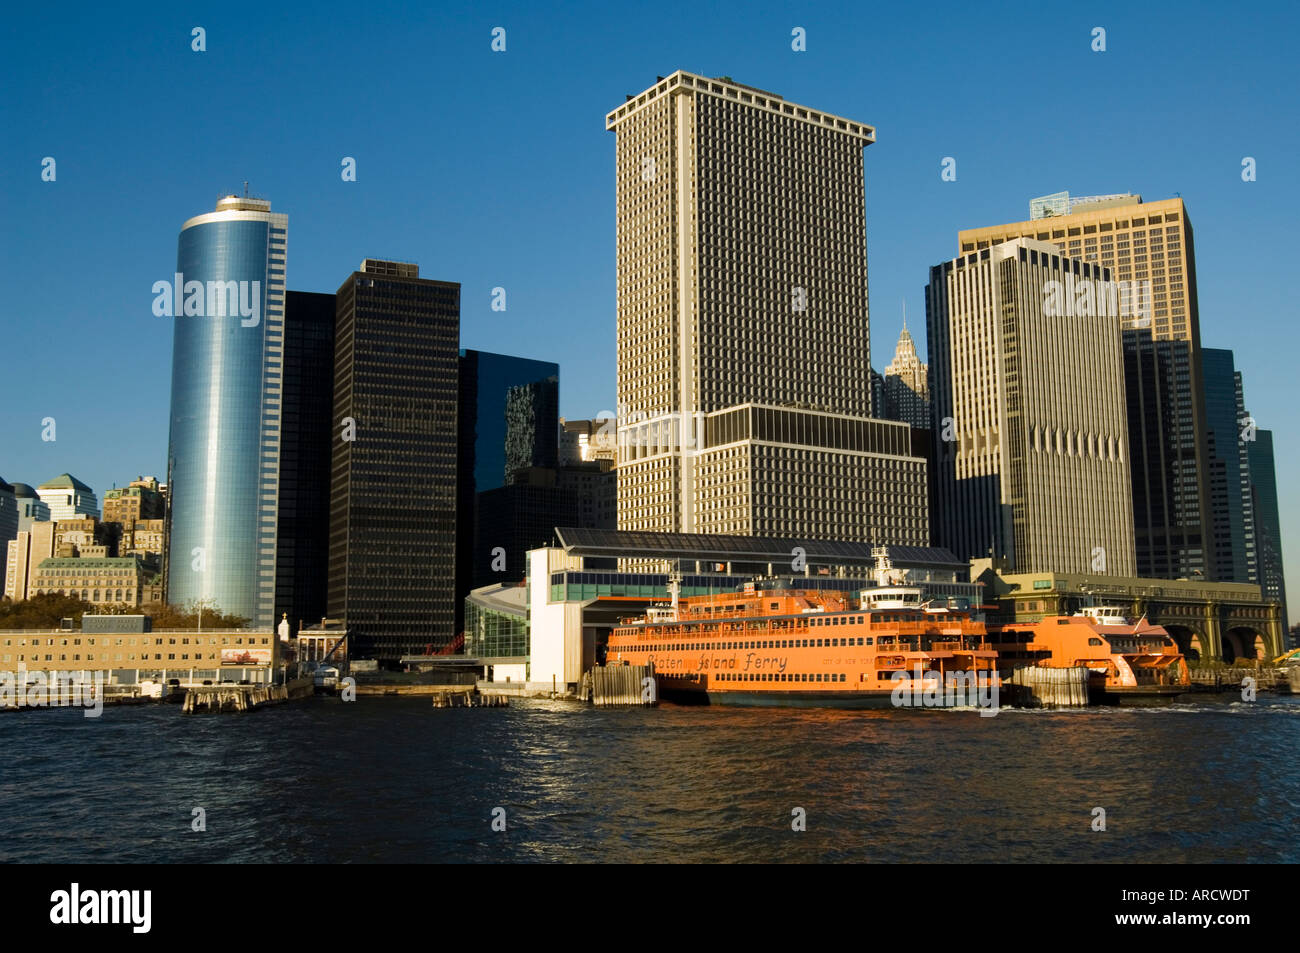 Staten Island ferry, Business district, Lower Manhattan, New York City, New York, United States of America, North - Stock Image